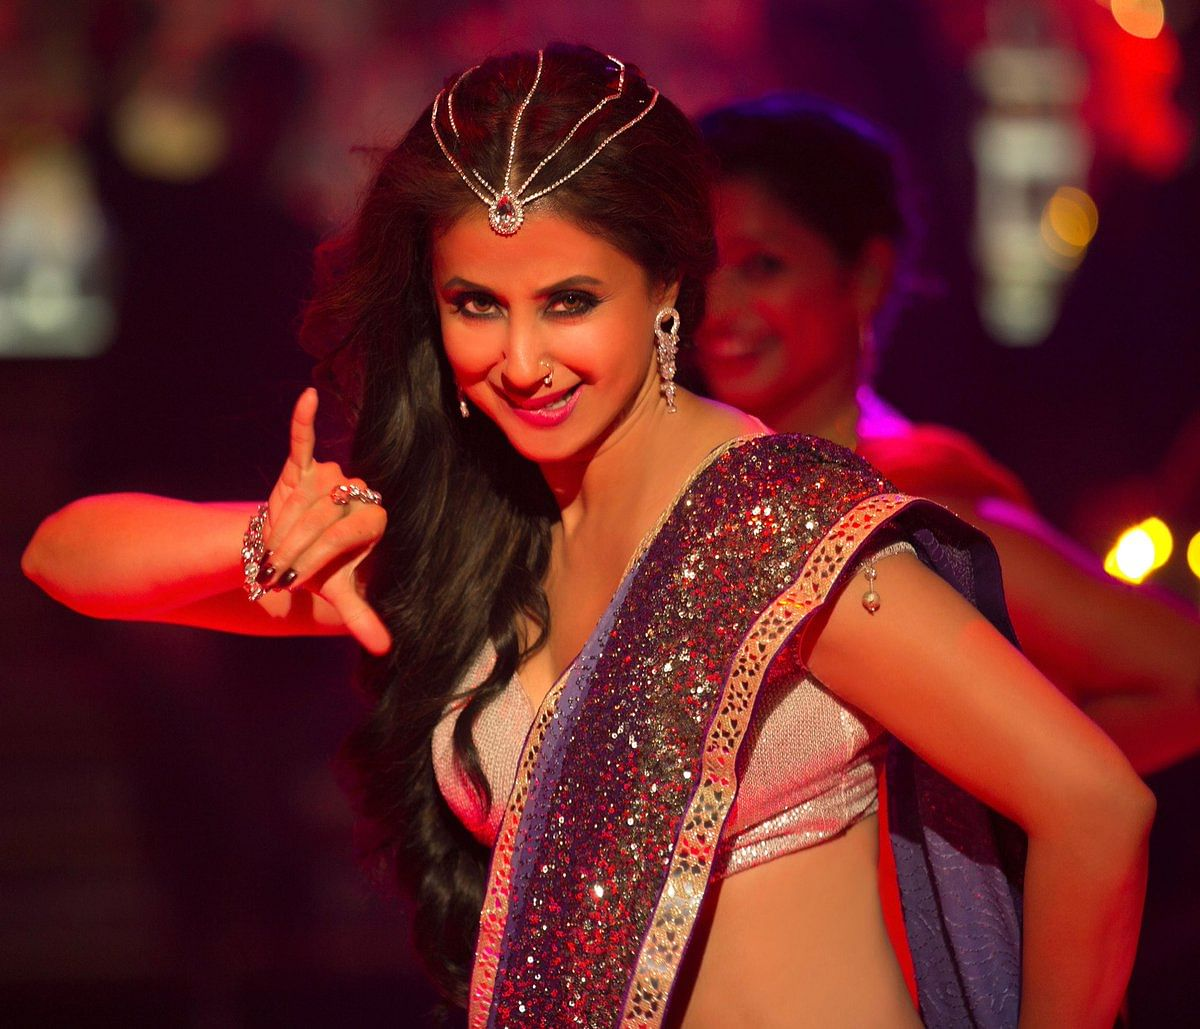 Urmila Matondkar shows off her moves in <i>Bewafa Beauty</i>&nbsp;from <i>Blackmail</i>.&nbsp;